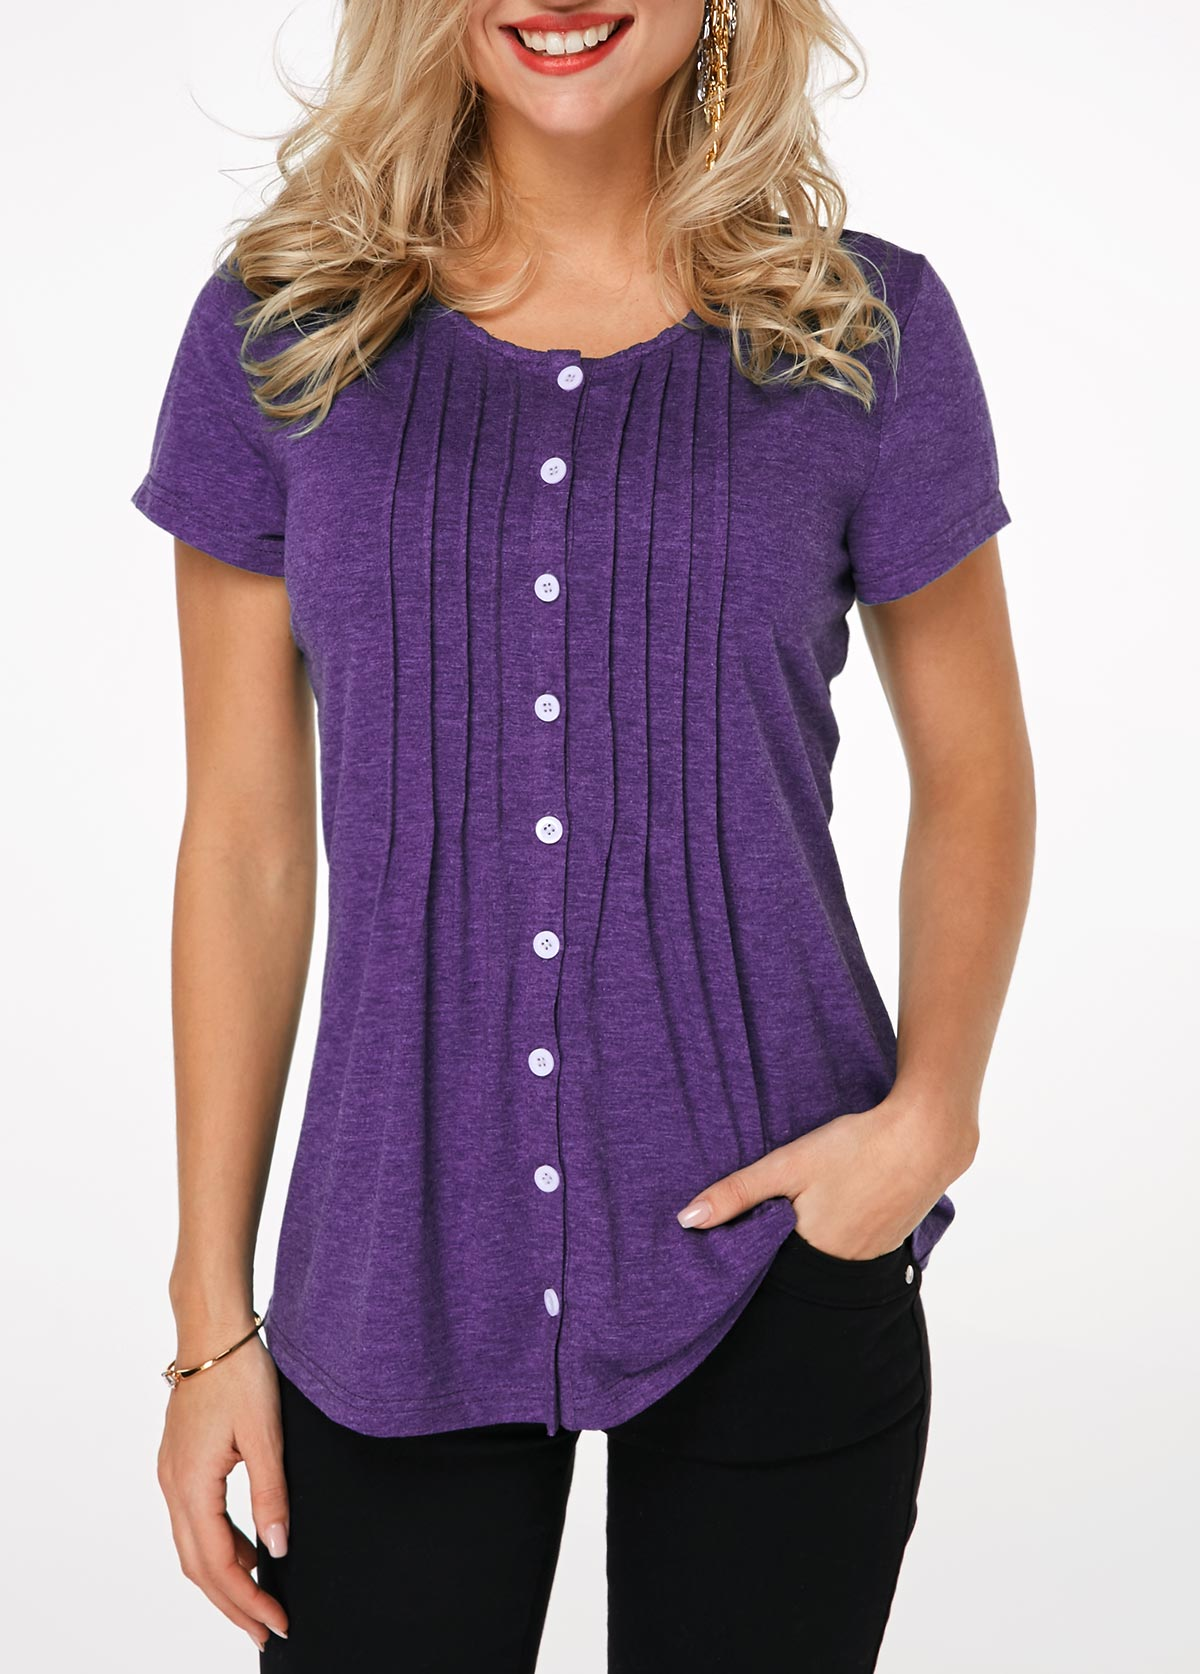 Button Up Pleated Purple T Shirt